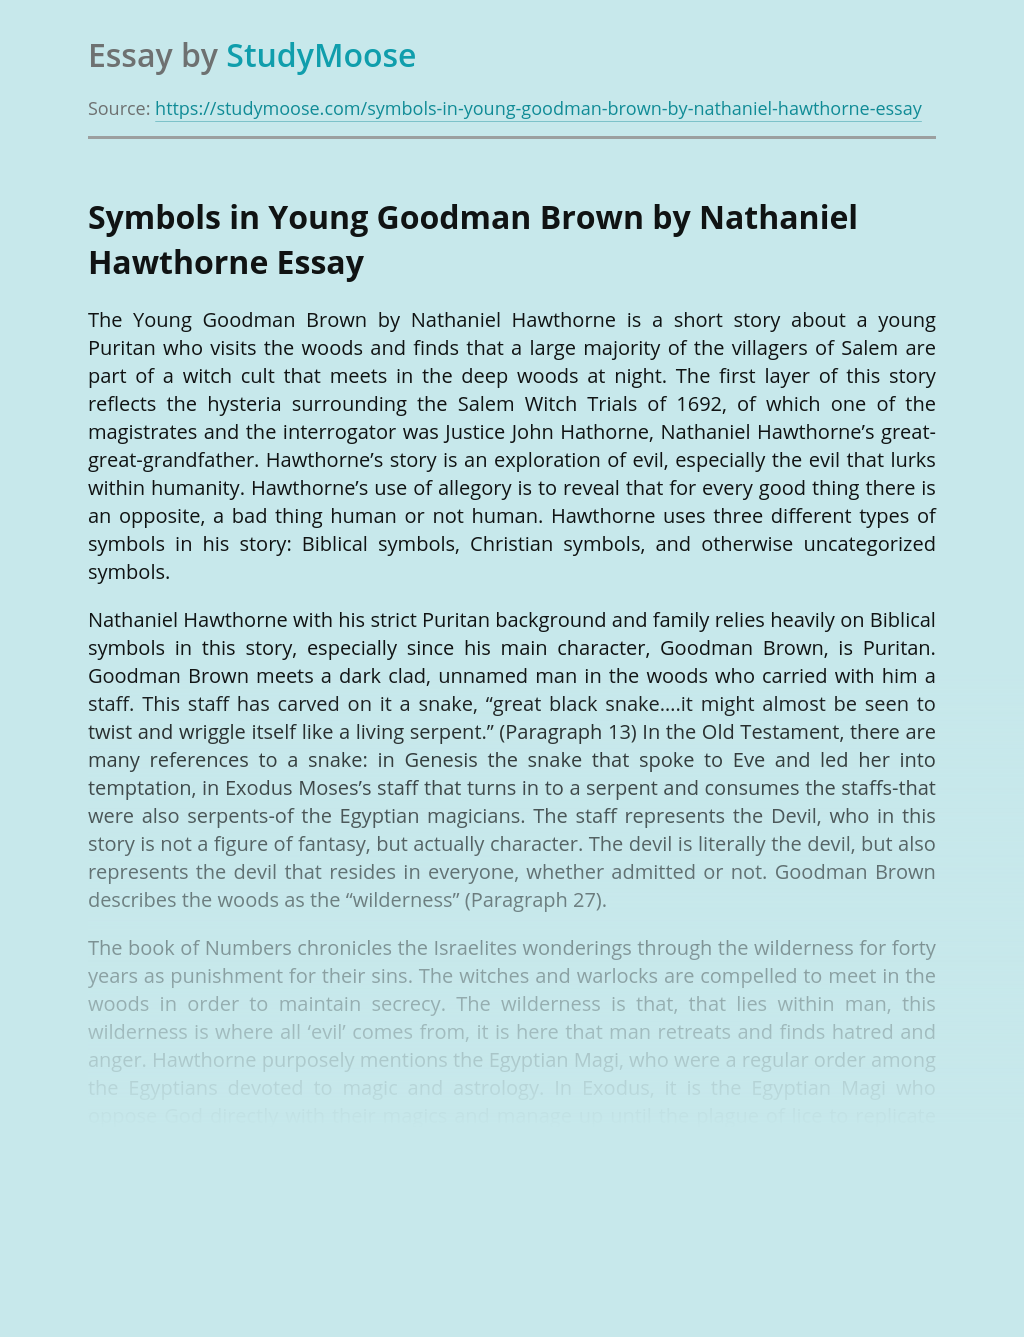 Symbols in Young Goodman Brown by Nathaniel Hawthorne